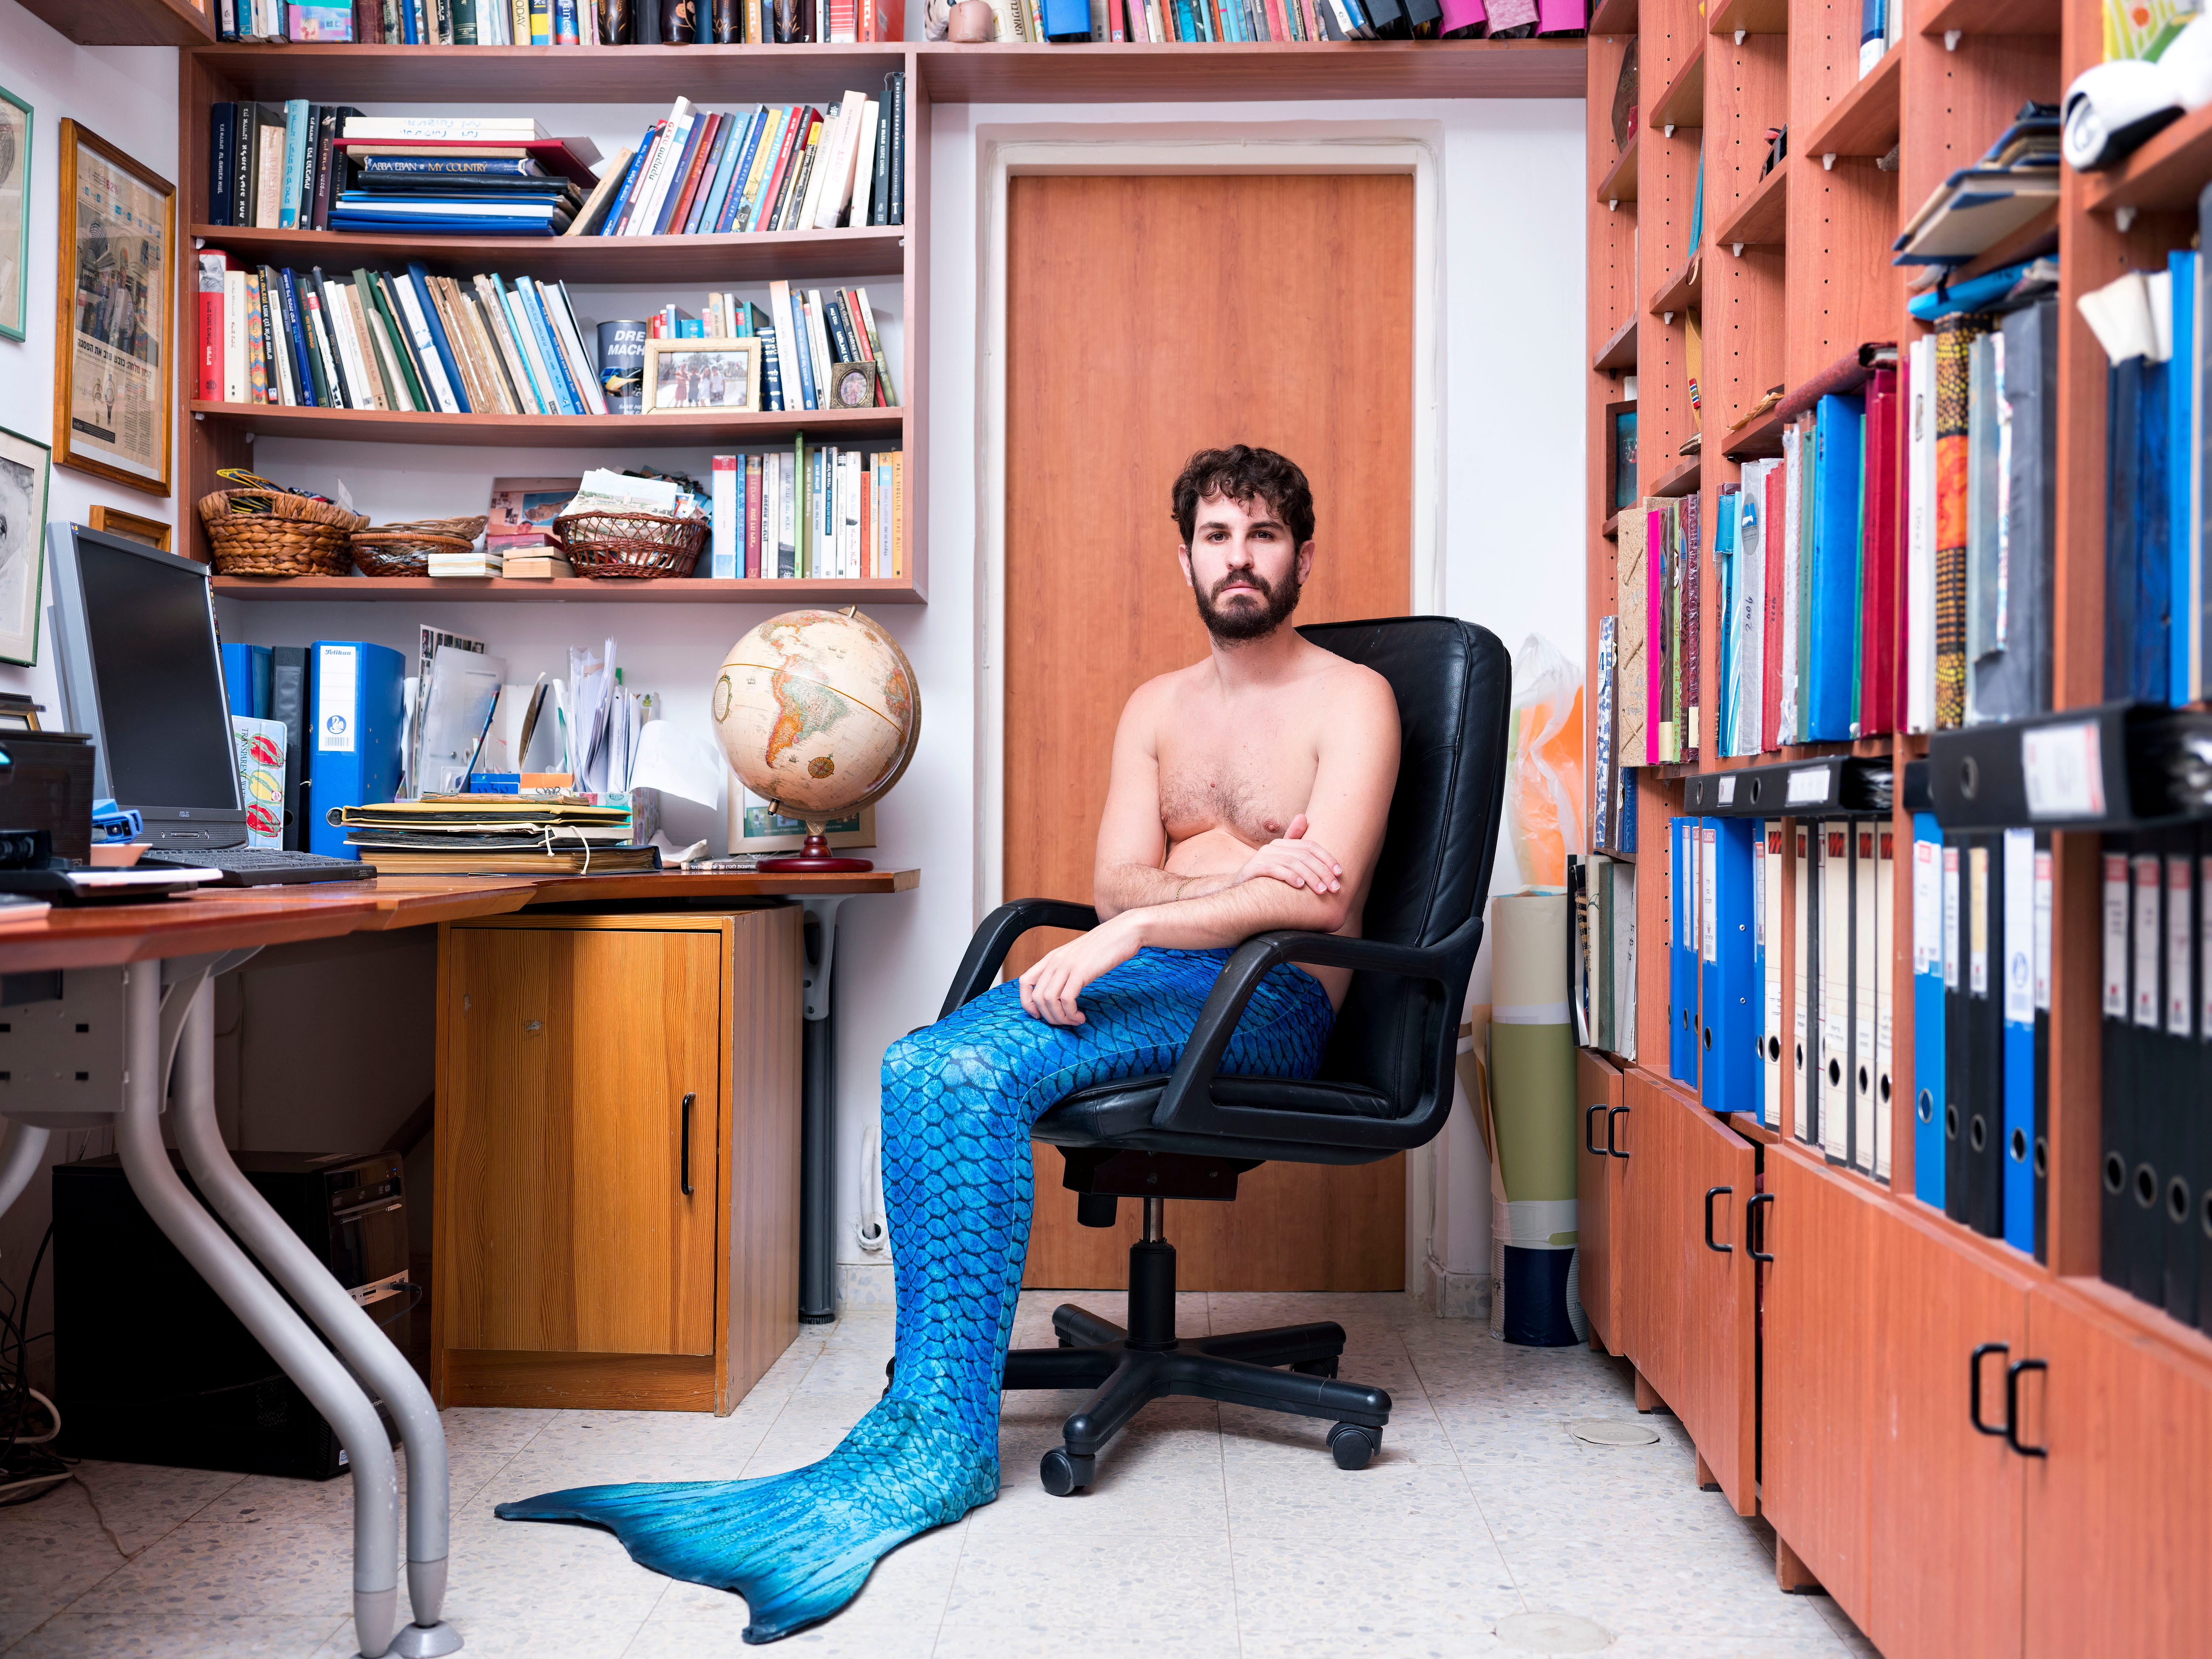 """In this Wednesday, Feb. 20, 2019 photo, Yuval Avrami, a member of the Israeli Mermaid Community, poses for a portrait as he wears a tail at his home in Jerusalem. One of the clan's few mer-men, says he learned about the trend through transgender friends and became fascinated by """"the transition from one species to another, the ability to inhabit a new, magical identity."""""""